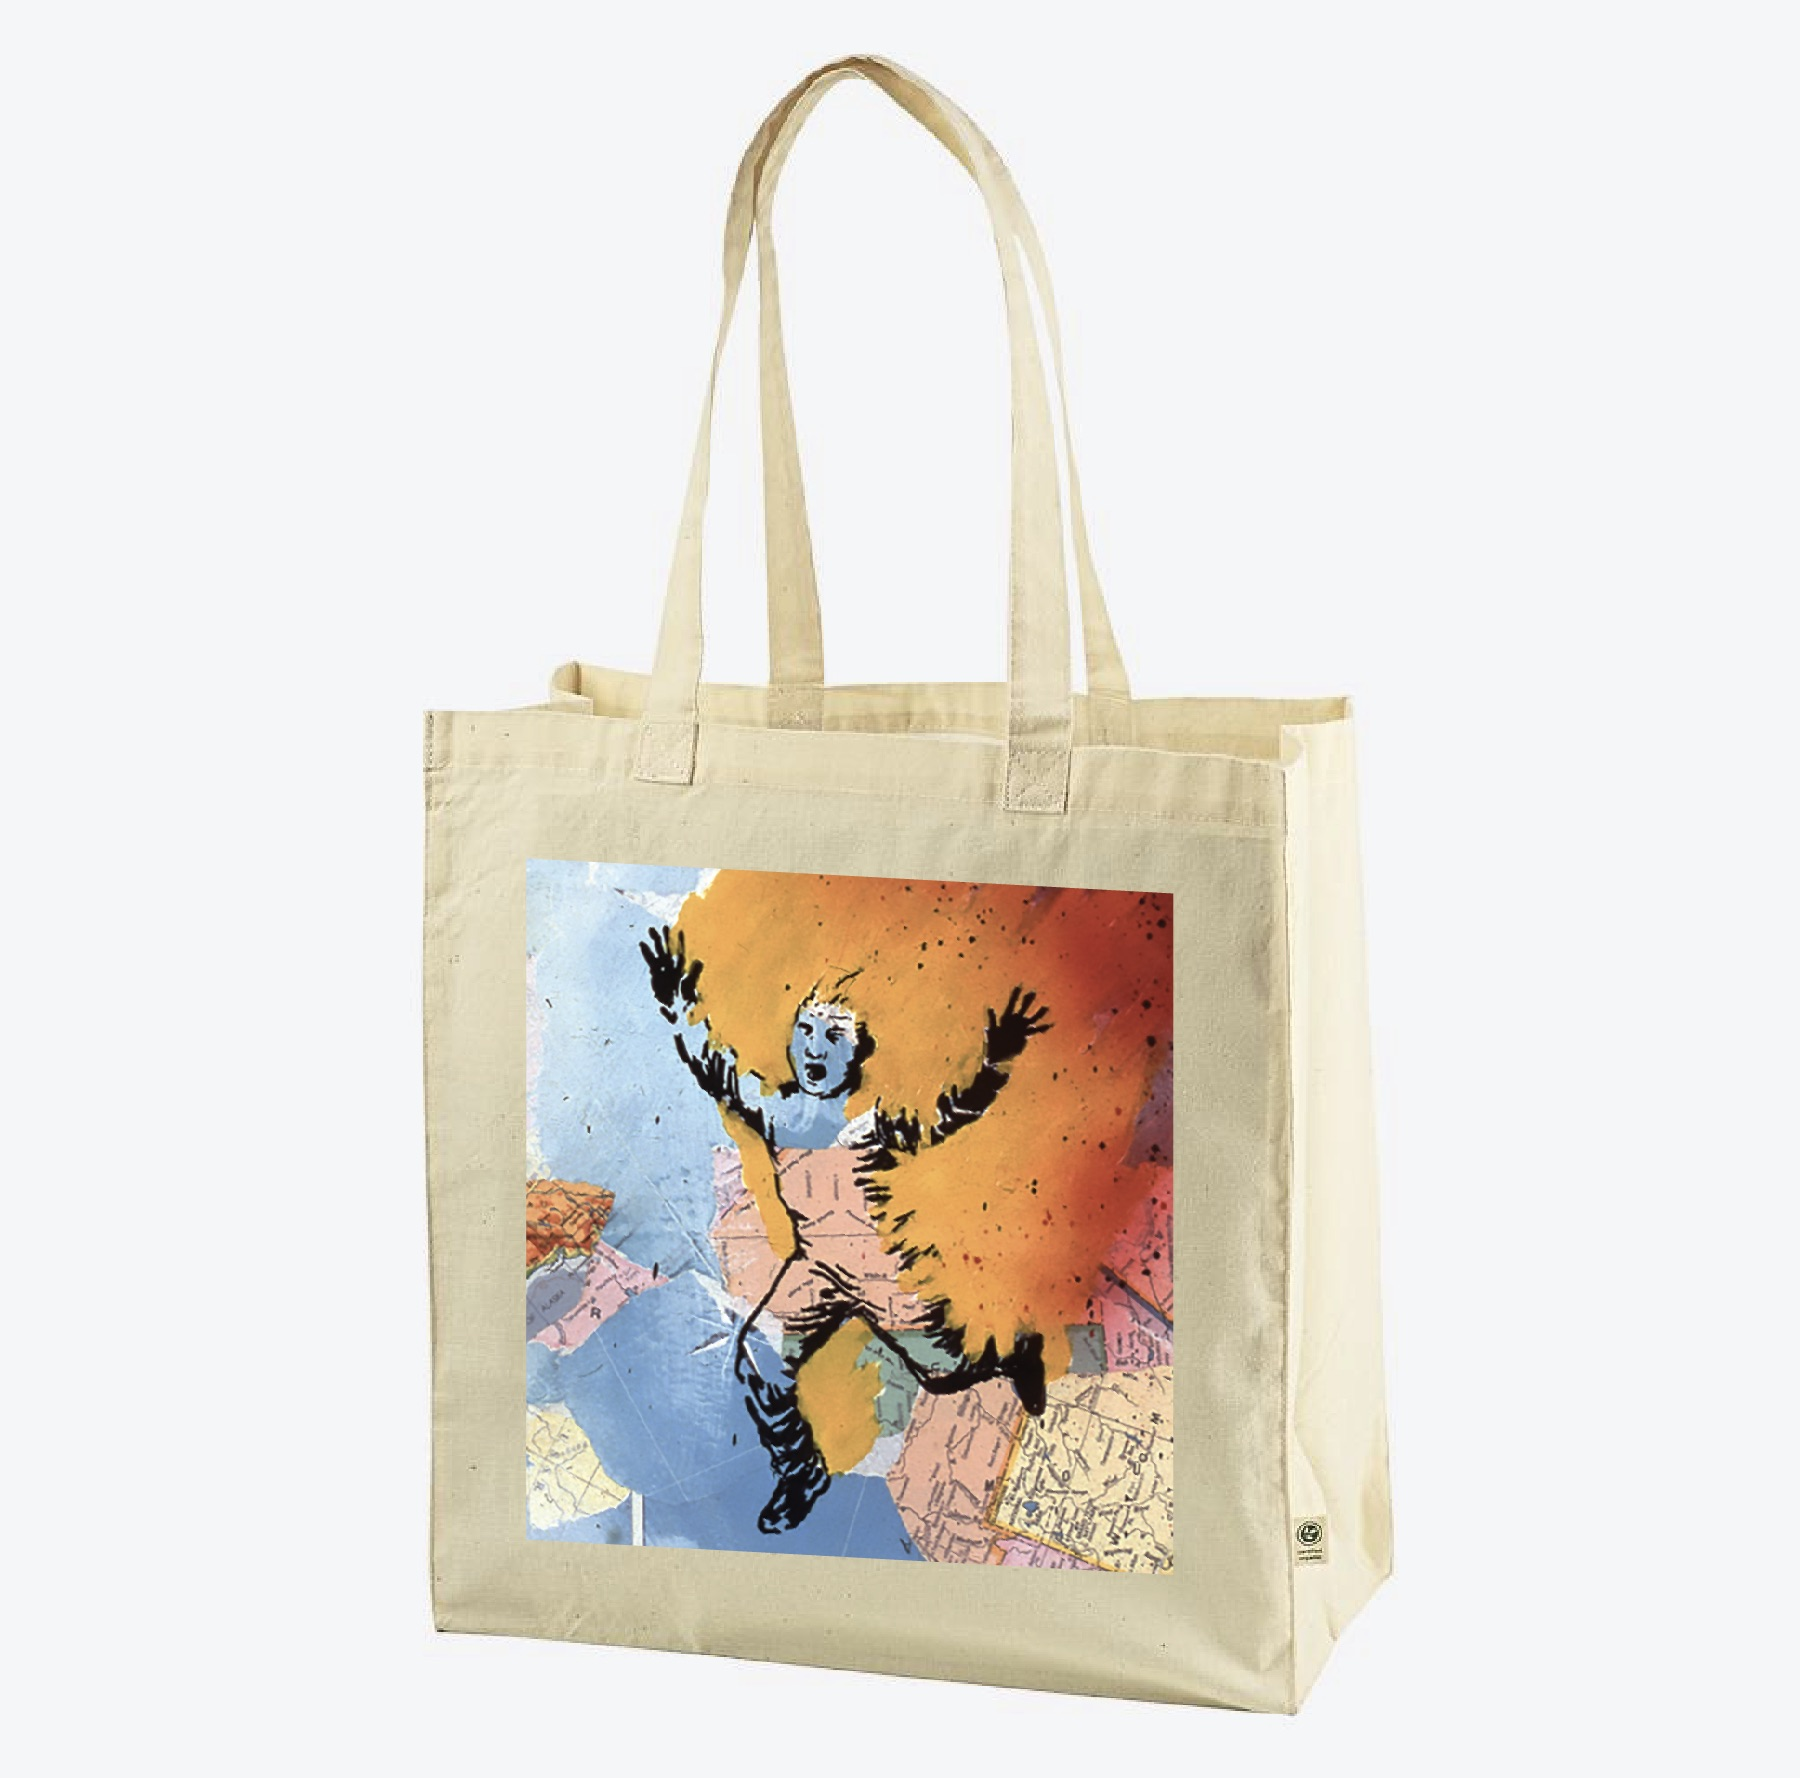 Get the David Wojnarowicz tote bag